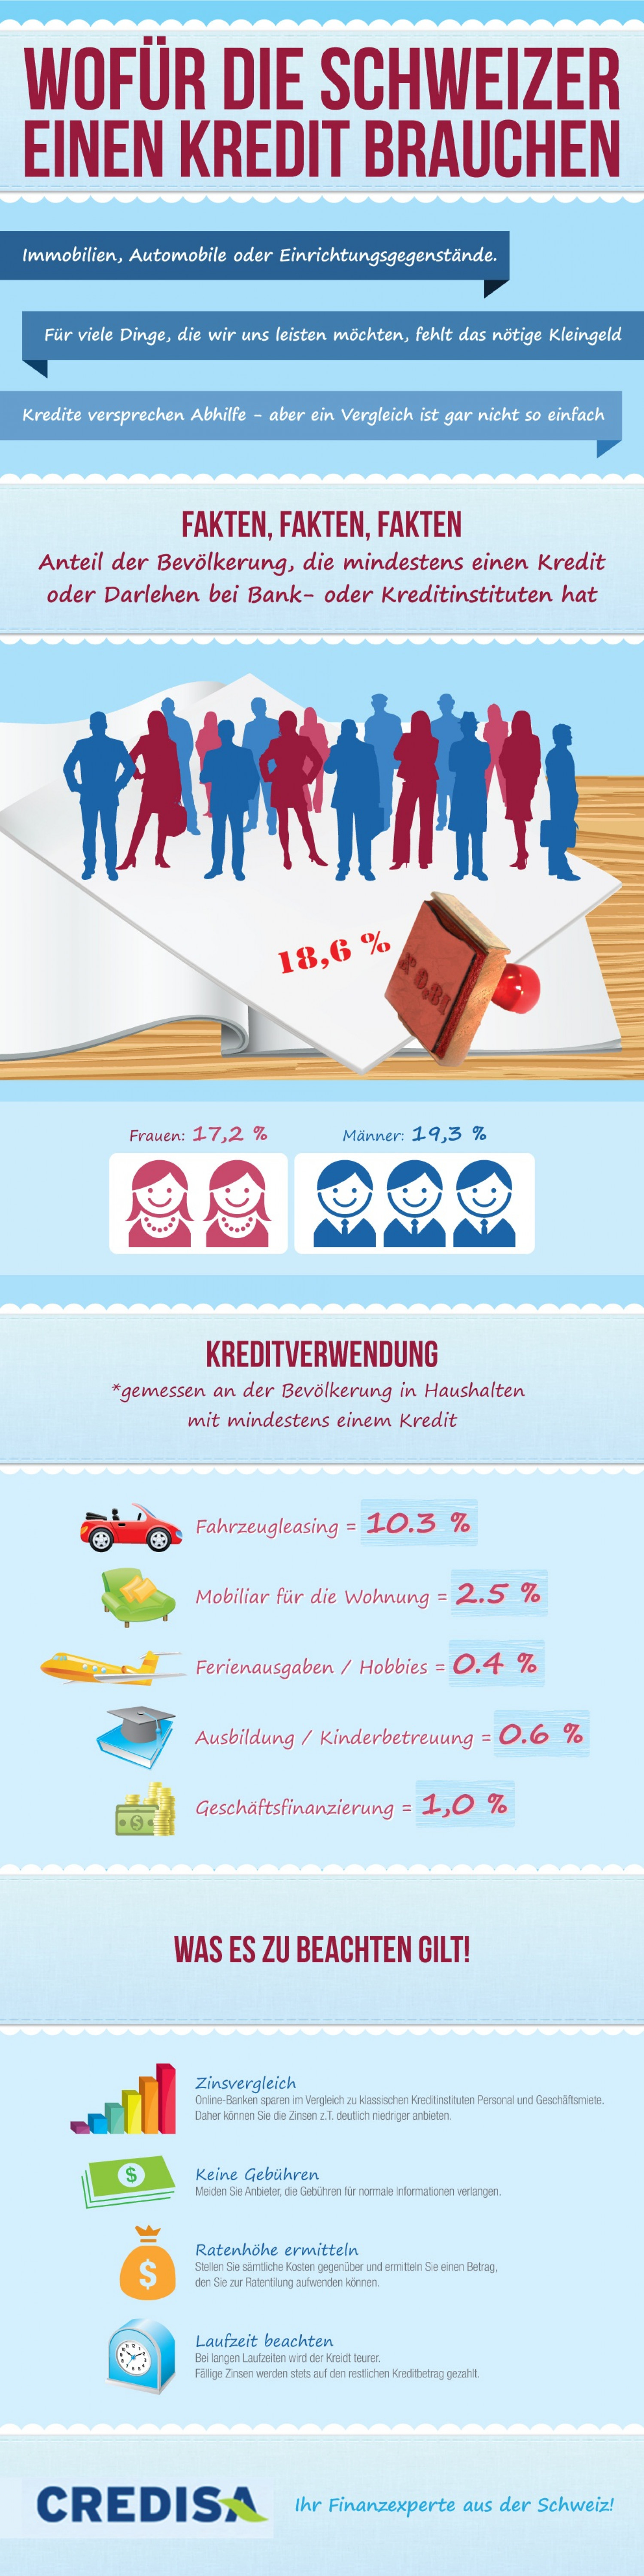 Loans in Switzerland Infographic